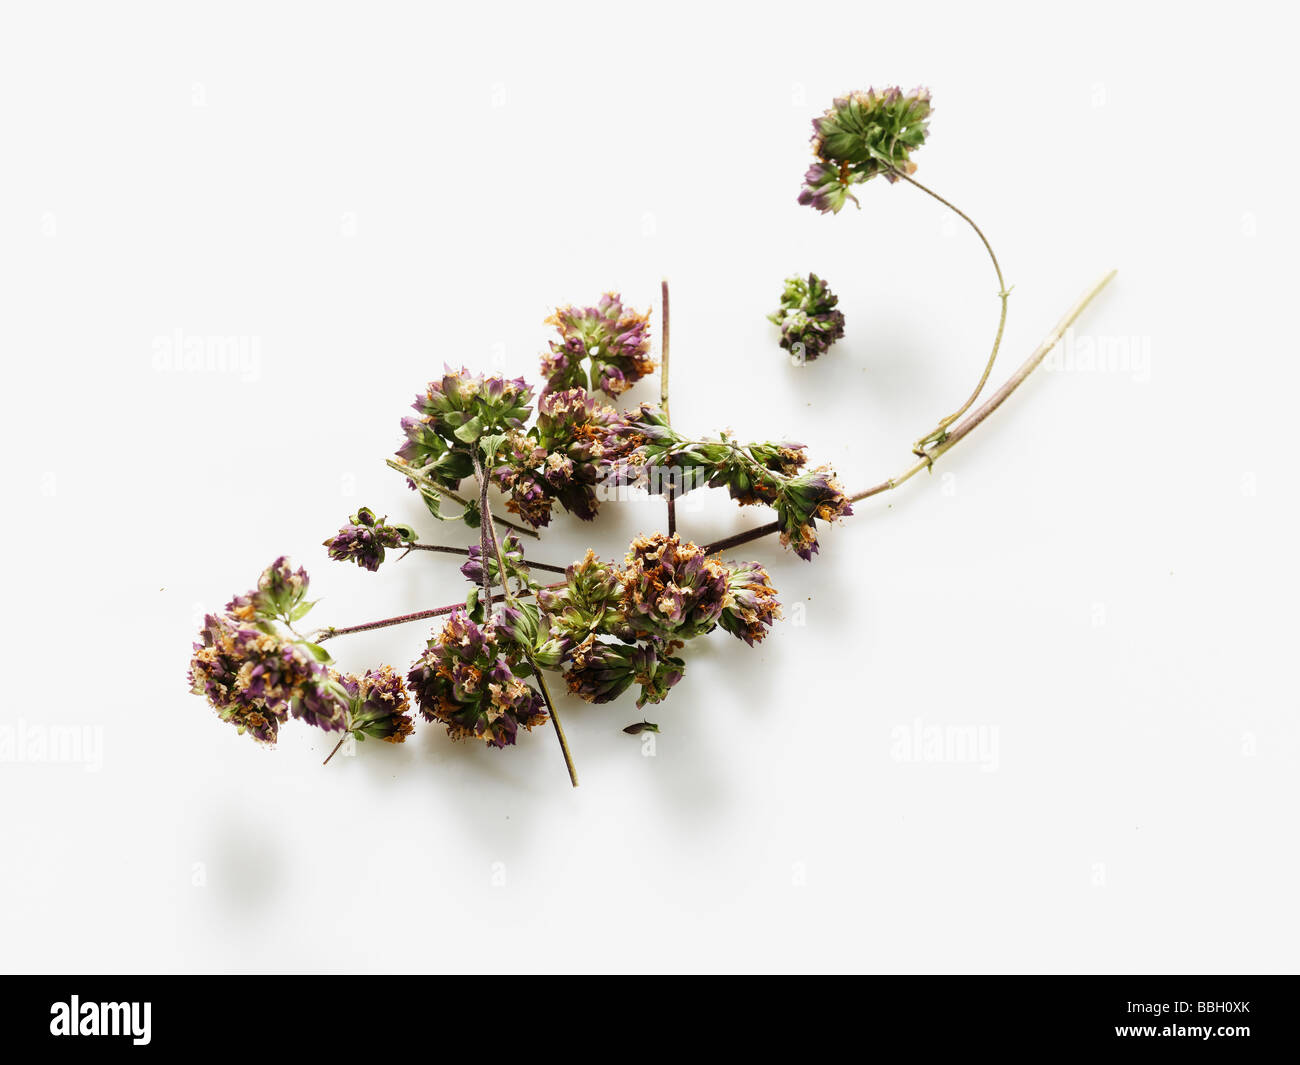 Flowering oregano on a white studio background - Stock Image